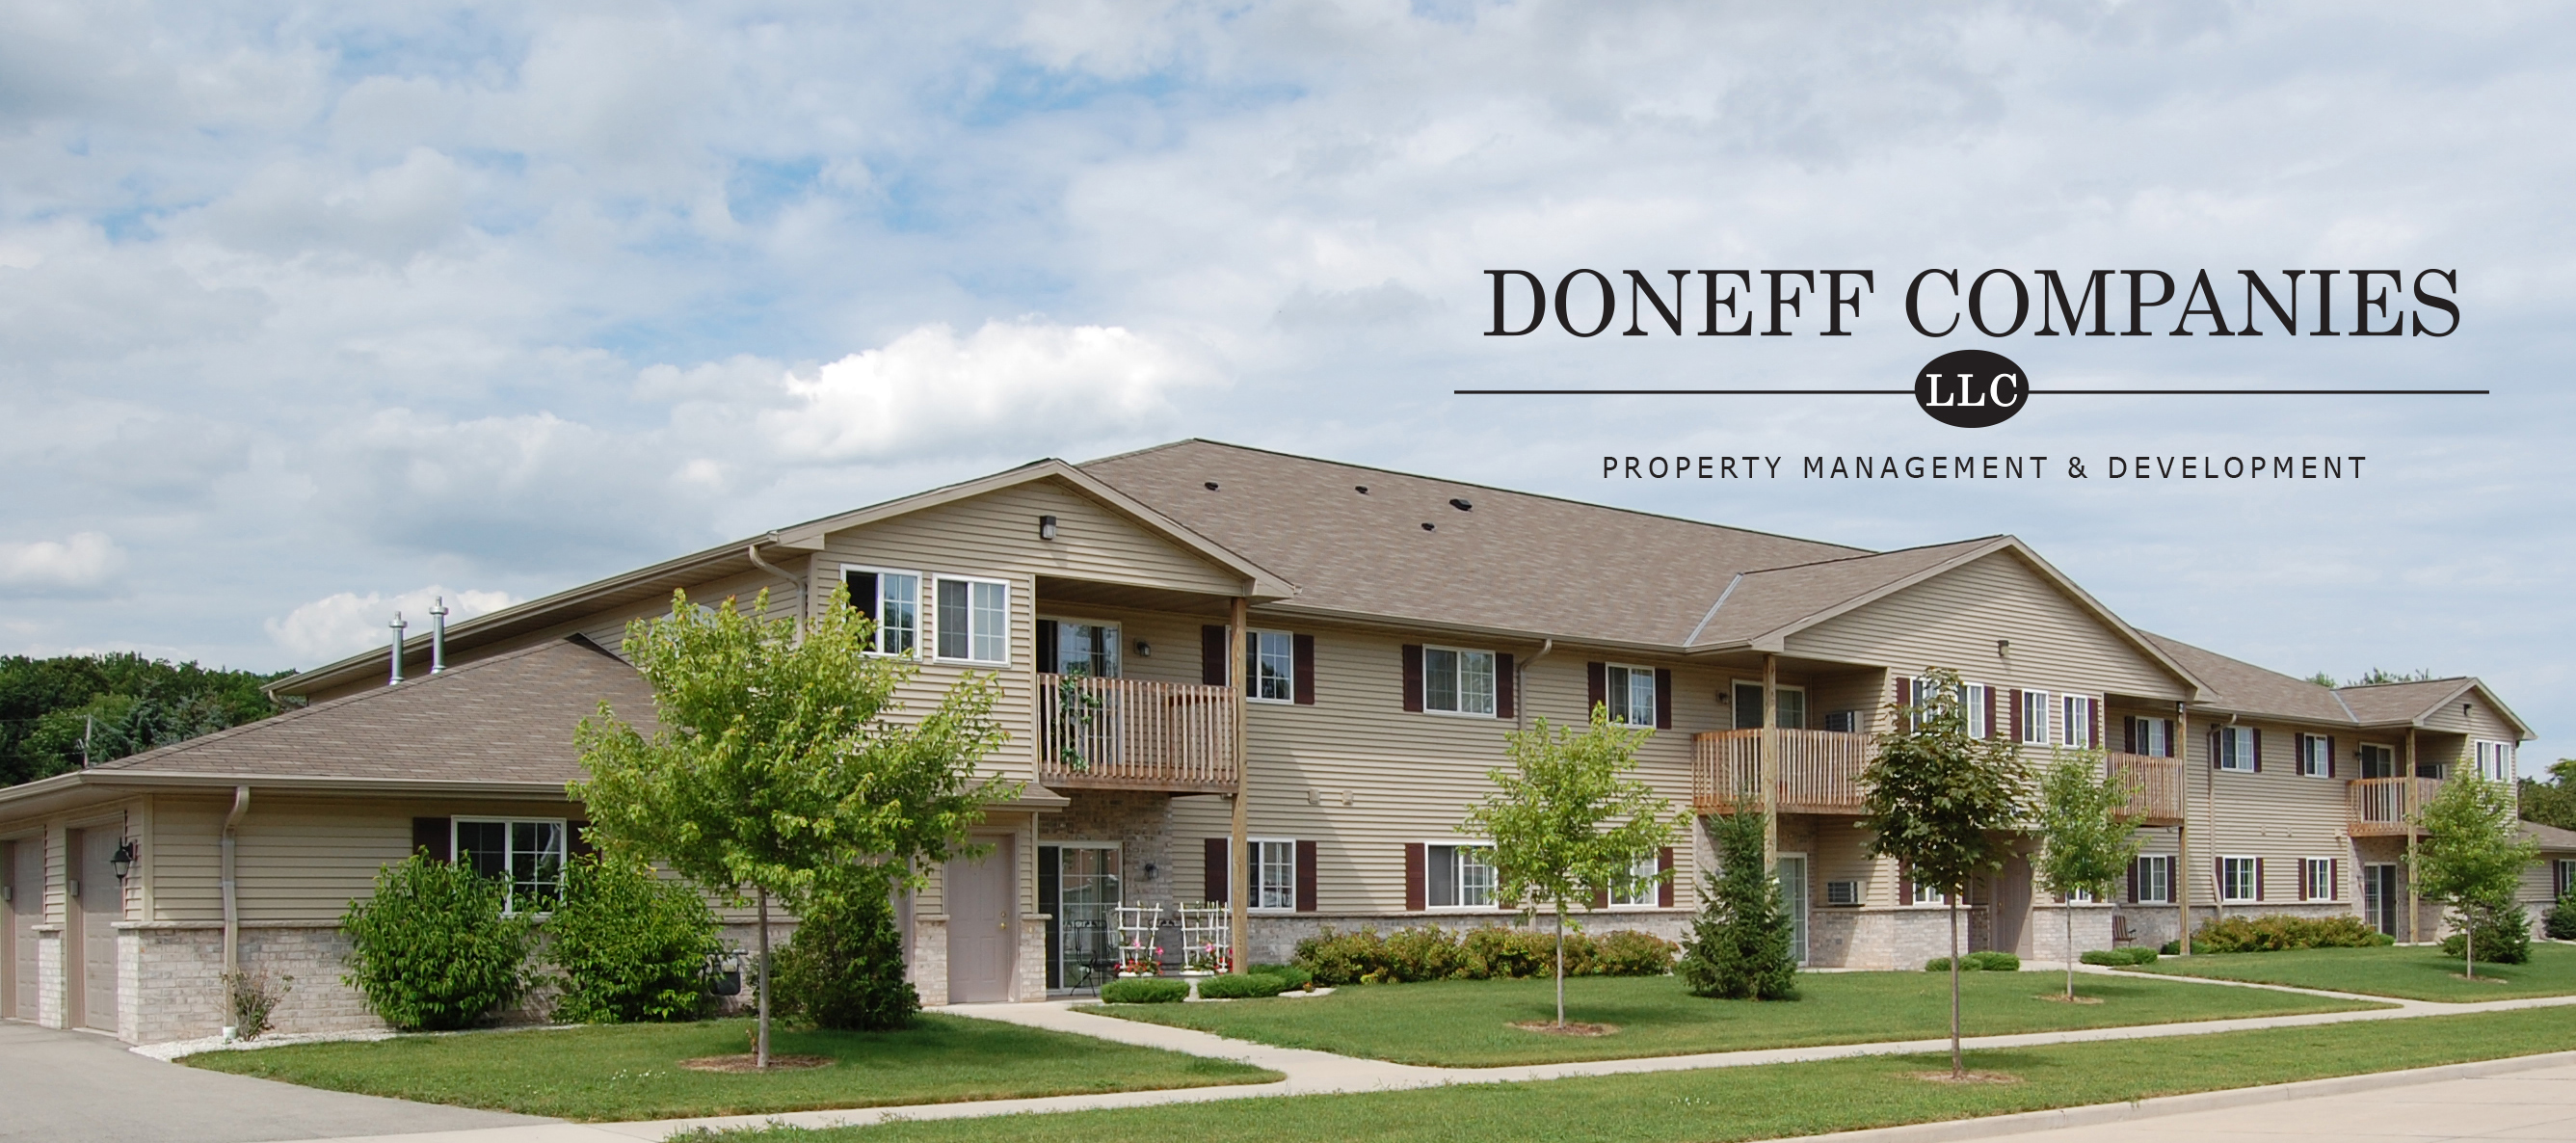 Doneff Companies LLC Photo